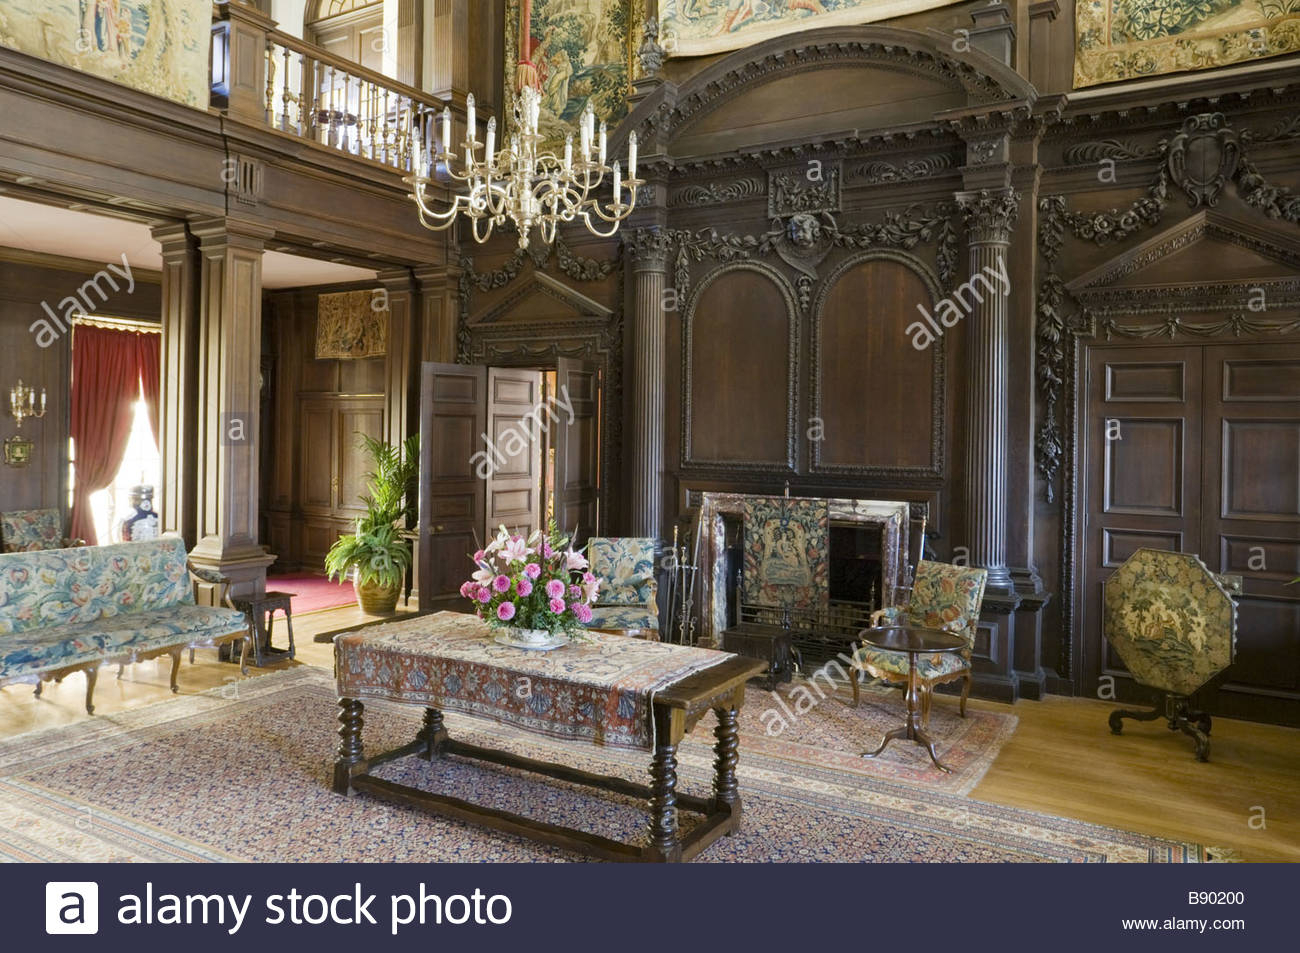 Recent 1903 5 Stock Photos & 1903 5 Stock Images – Alamy Within Poynter 3 Piece Drop Leaf Dining Sets (#11 of 20)